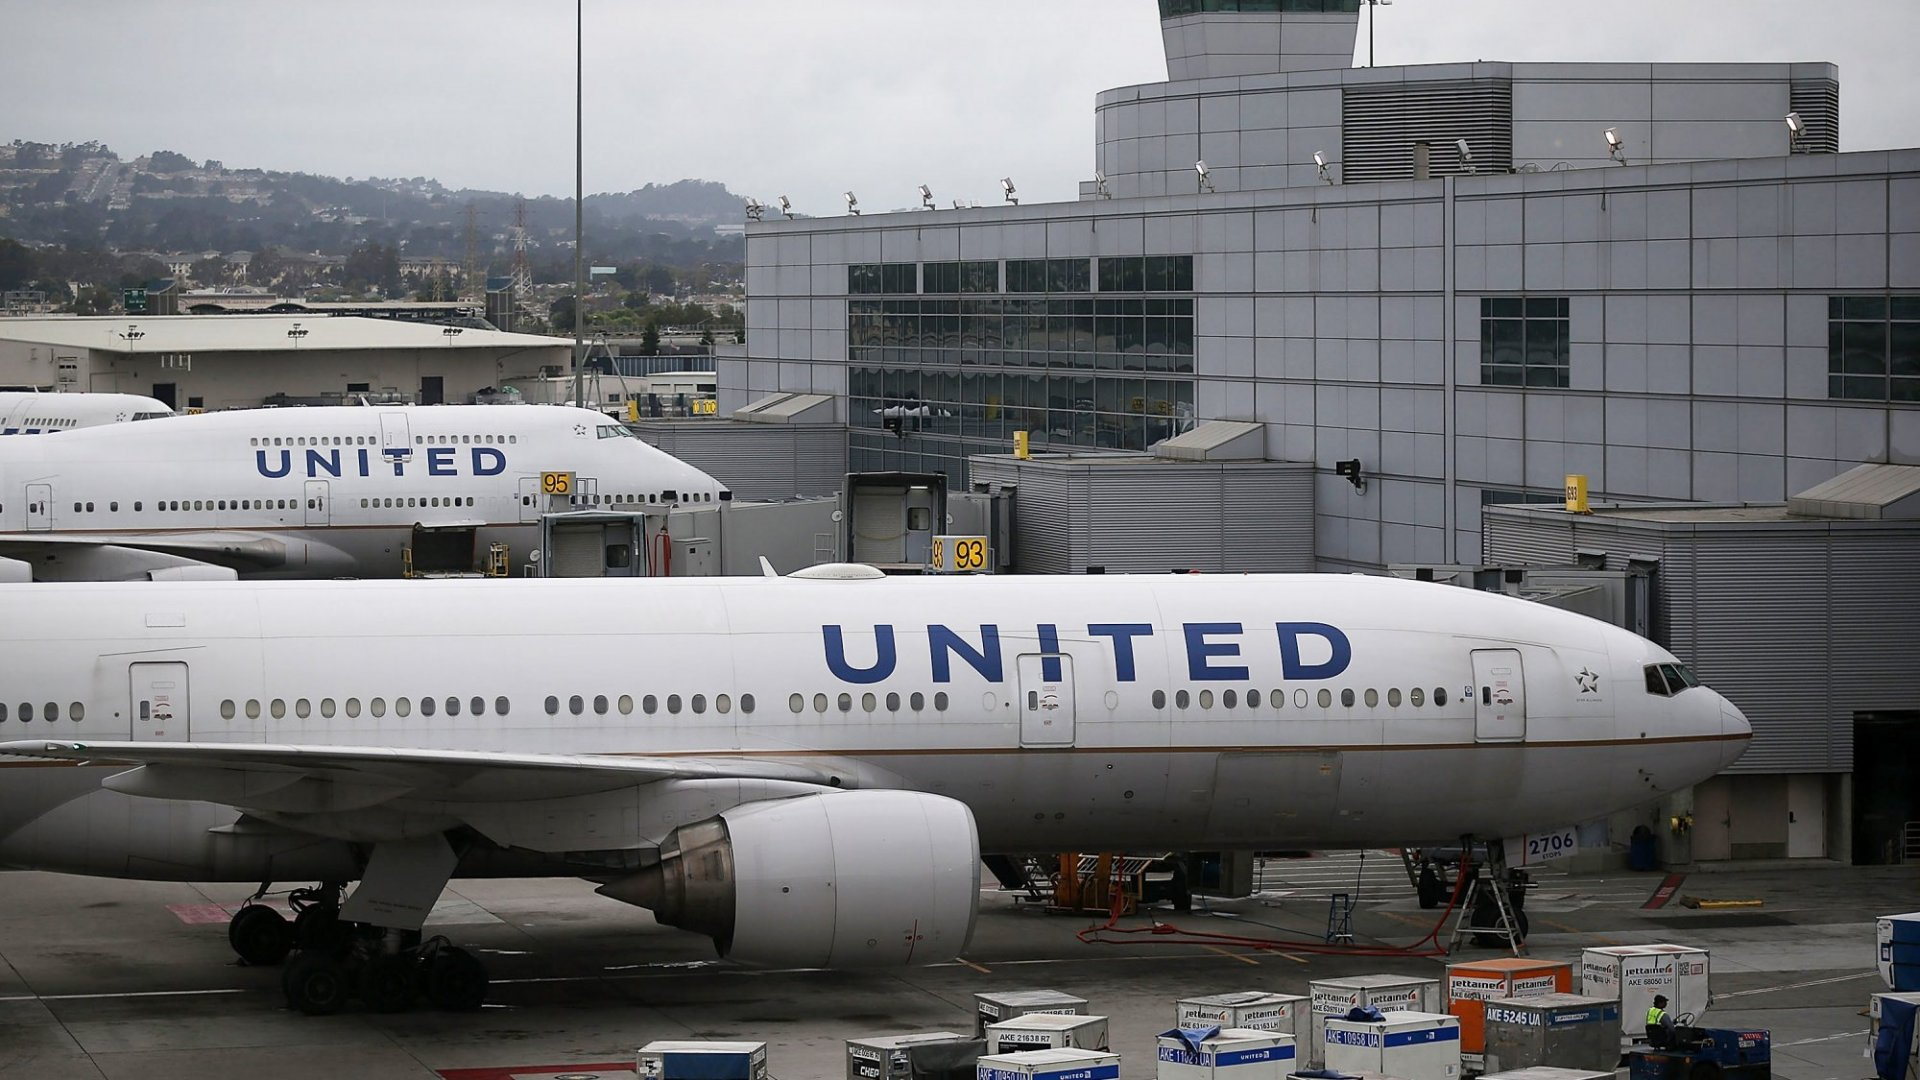 'Outrageous.' 'Unacceptable.' United Airlines Is Making 1 Small Change, but Its Flight Attendants Are Now Very Angry